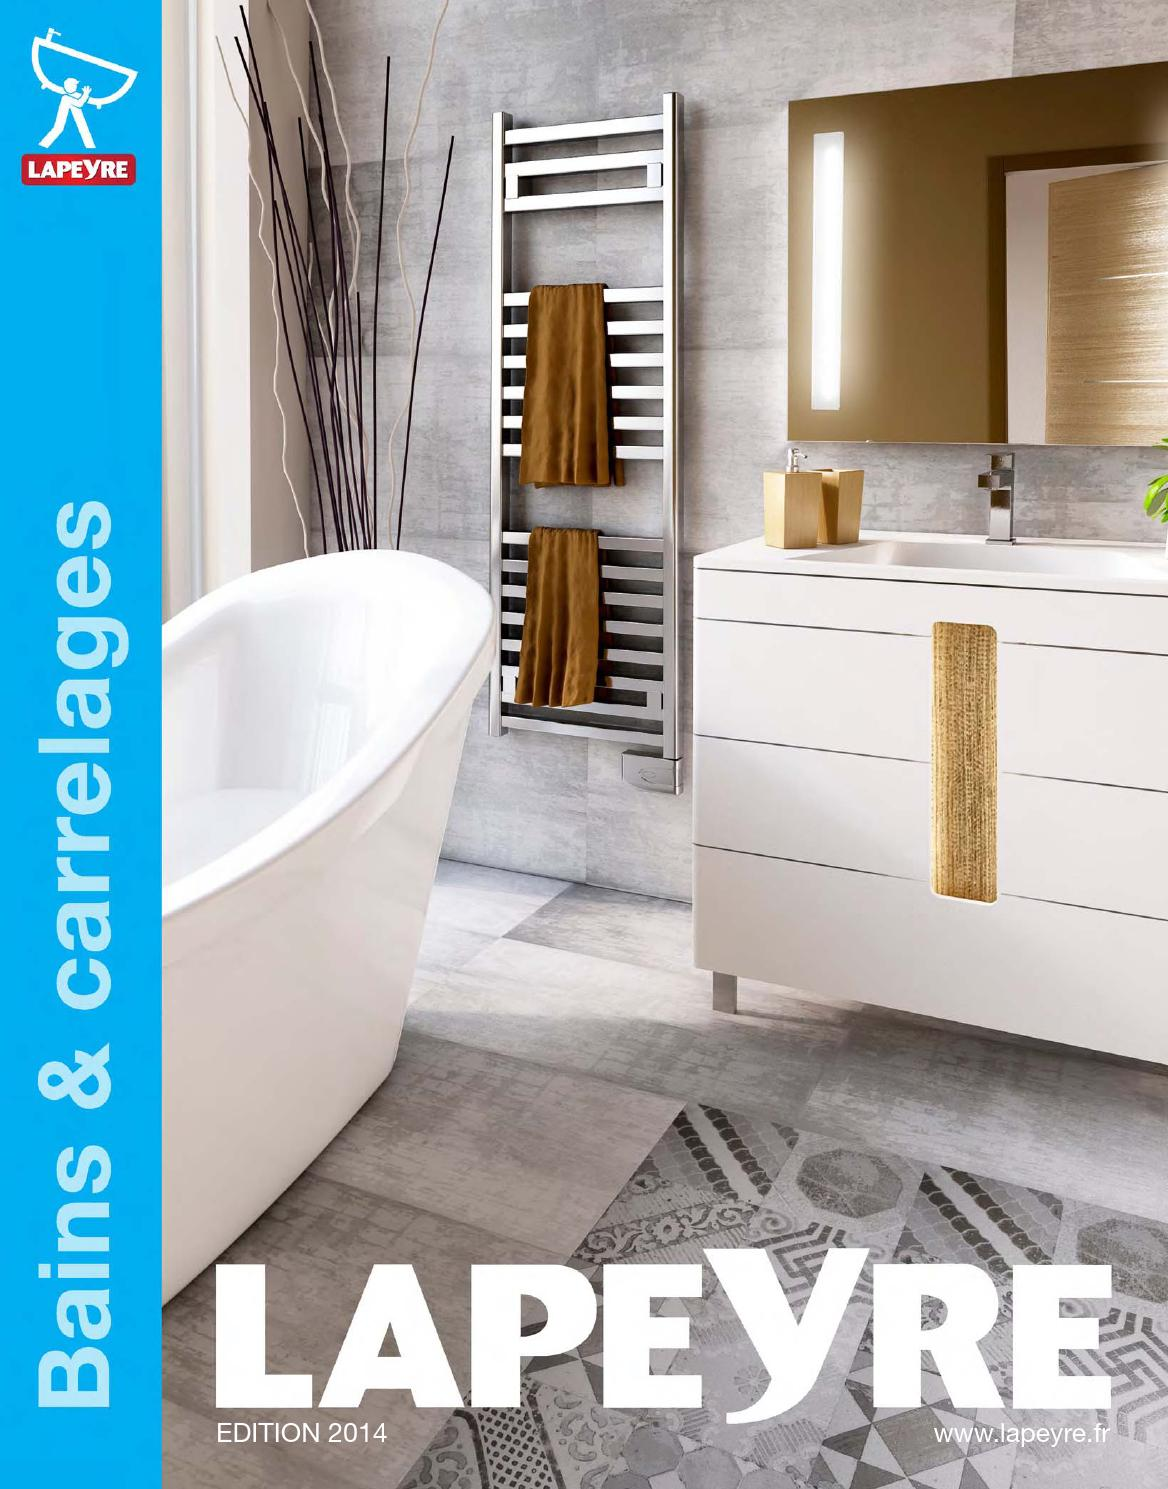 lapeyre reims verrires duatelier chez lapeyre et. Black Bedroom Furniture Sets. Home Design Ideas